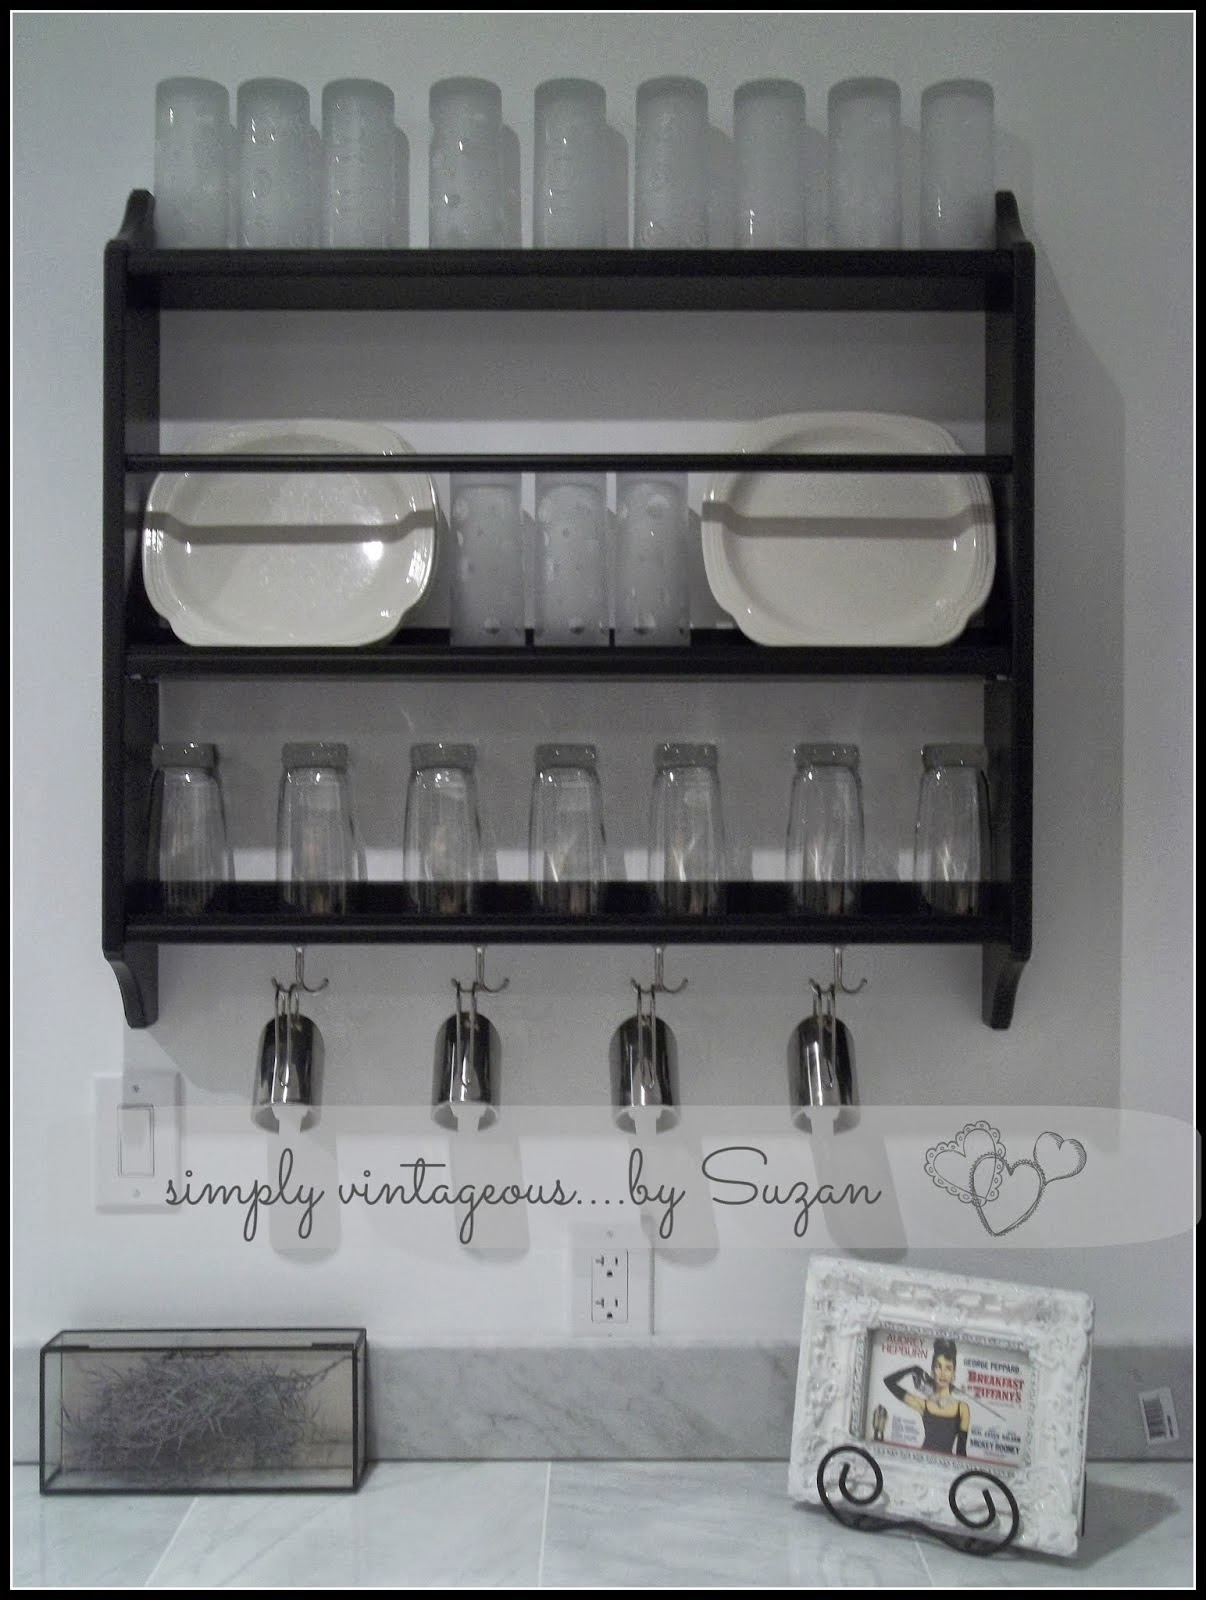 Kitchen plate racks instead of cupboards